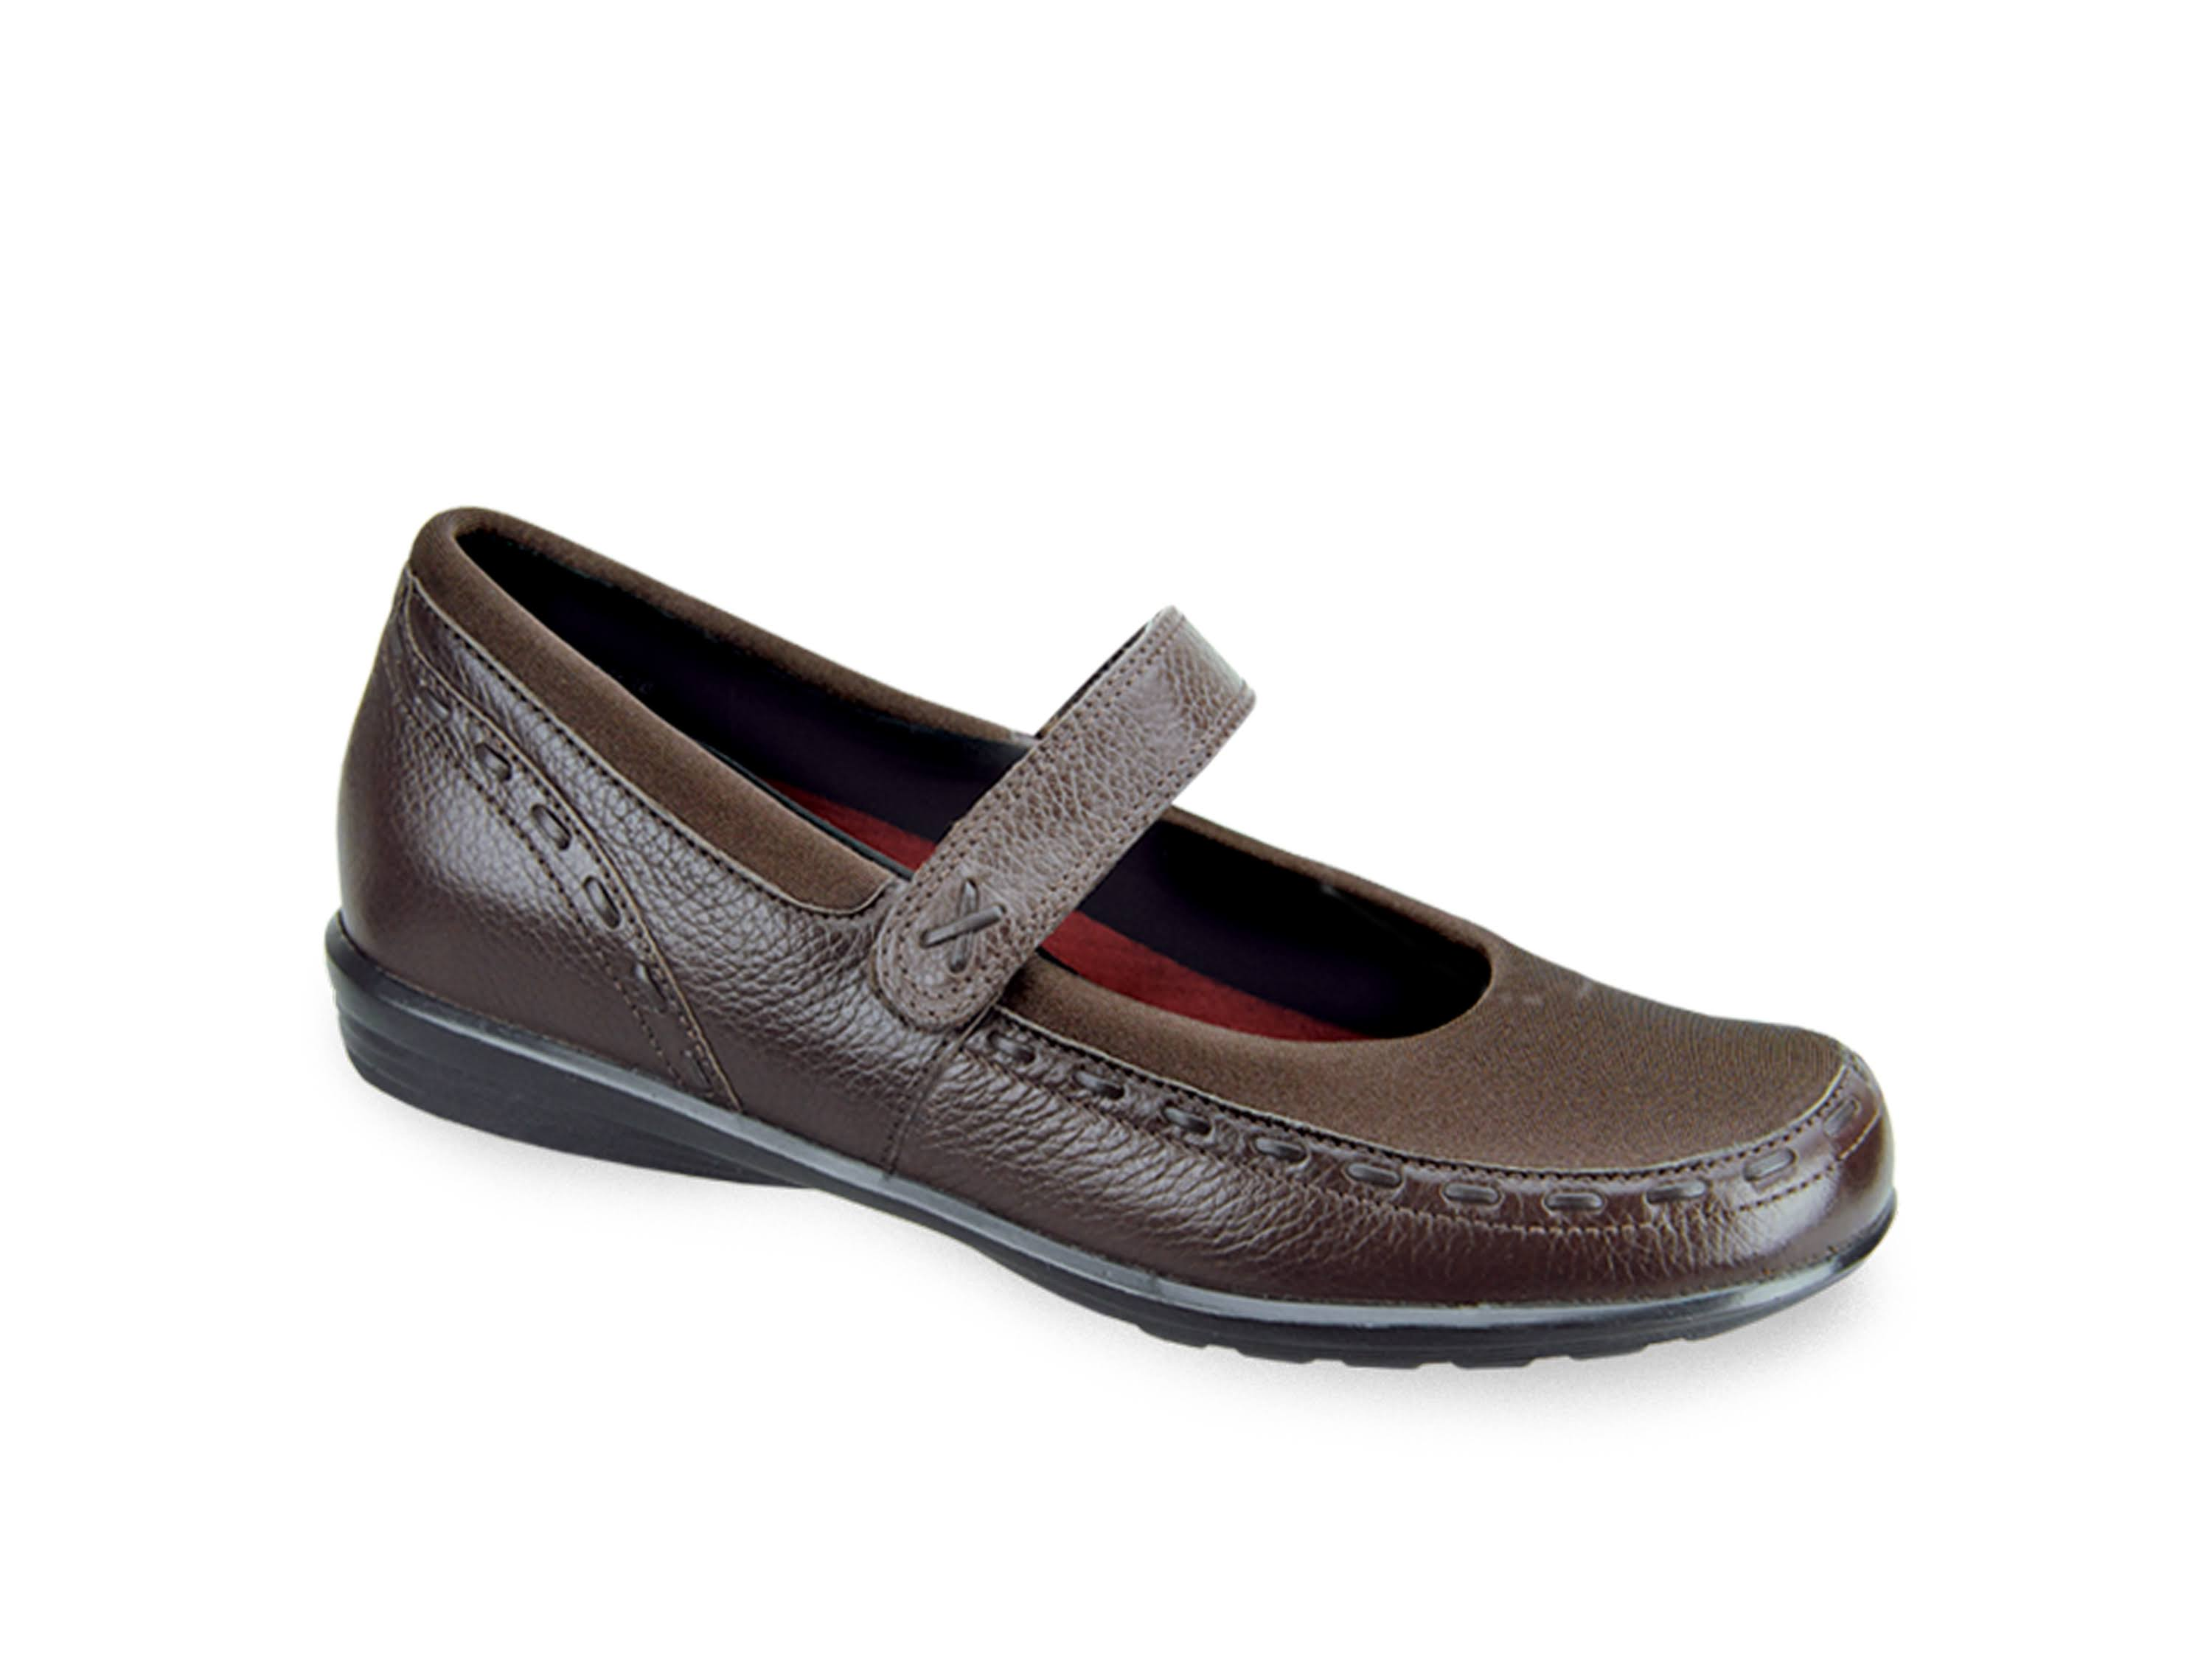 Aetrex Women's Berries Mary Jane Shoes - Brown, 9.5 C/D US